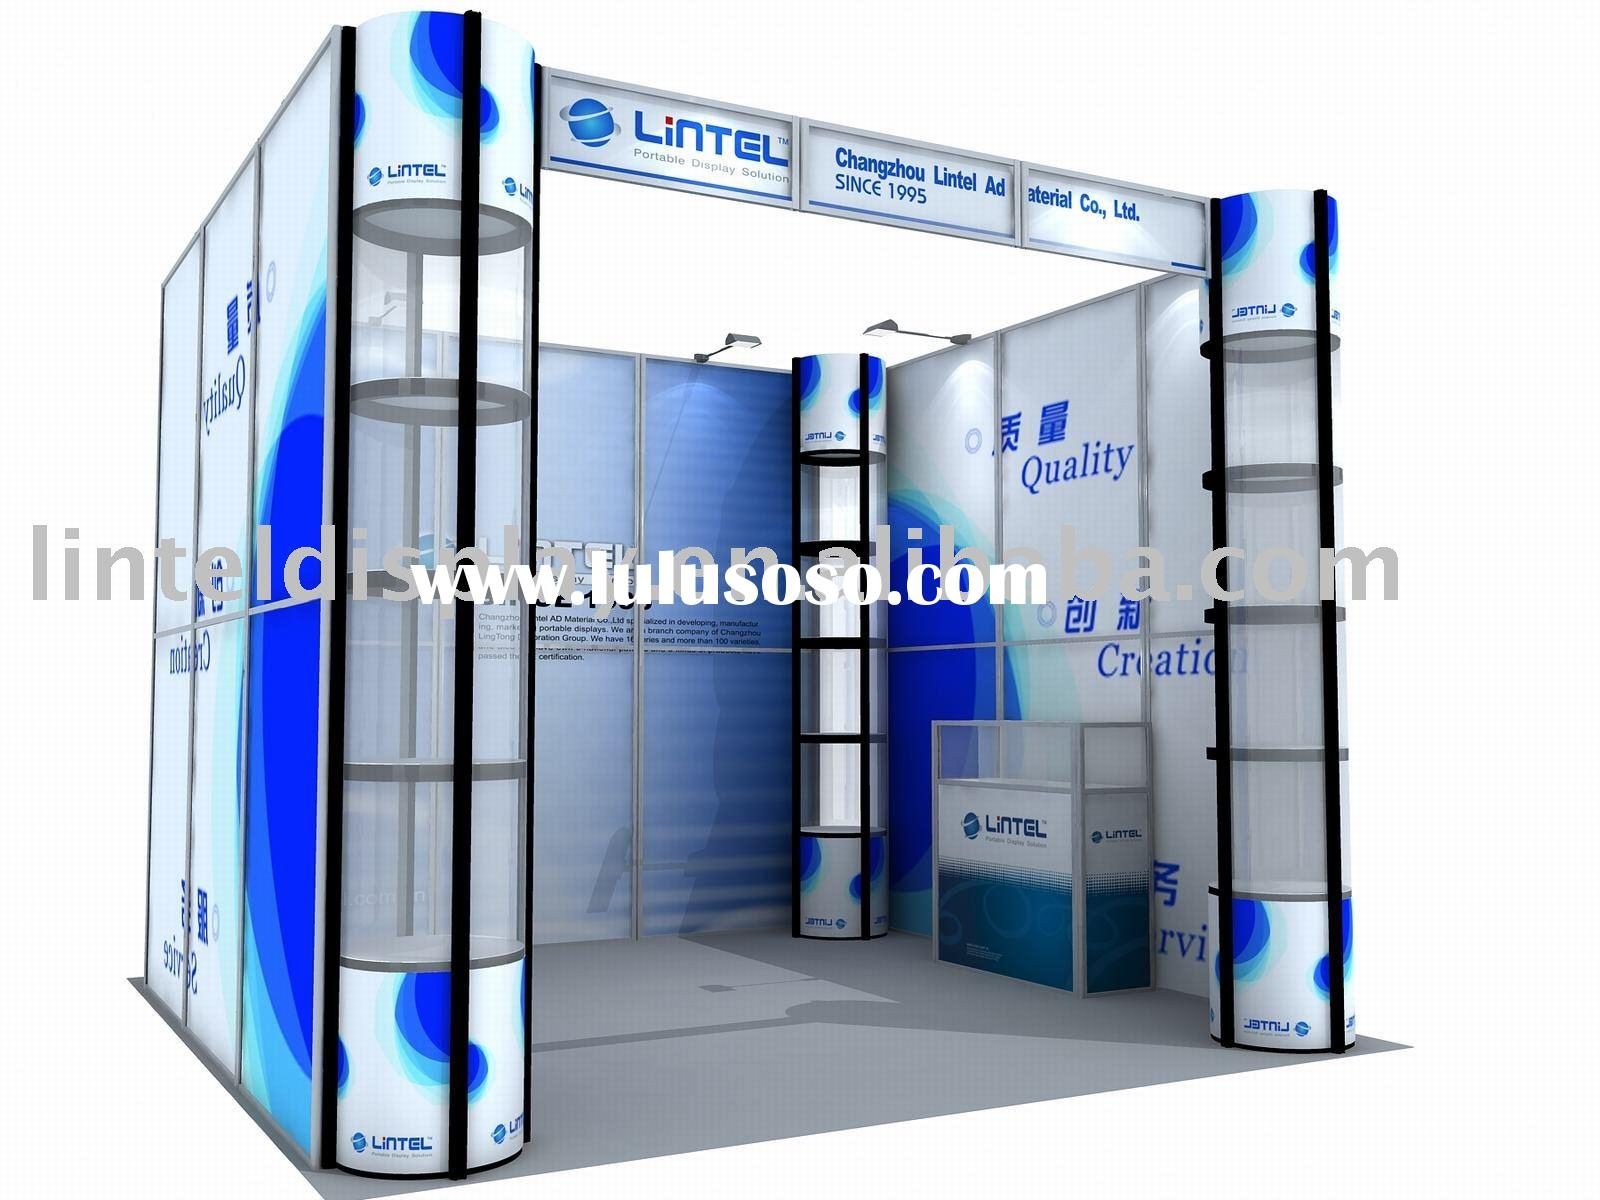 trade show exhibit booth display design 3*3